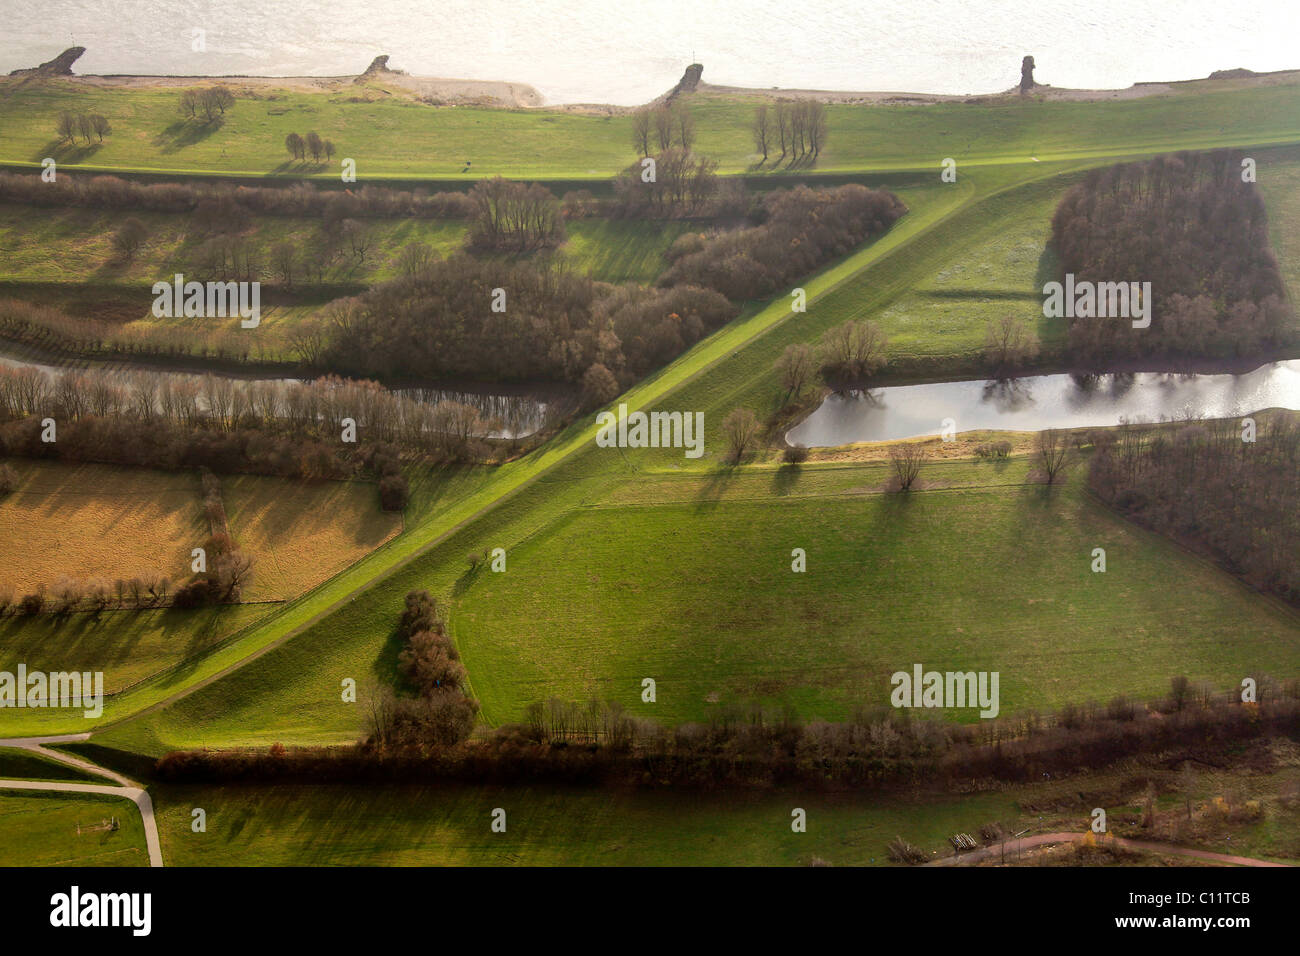 Aerial view, Rhine river, Rhine river flood plains, Rheinhausen, Duisburg, Ruhrgebiet region, North Rhine-Westphalia Stock Photo